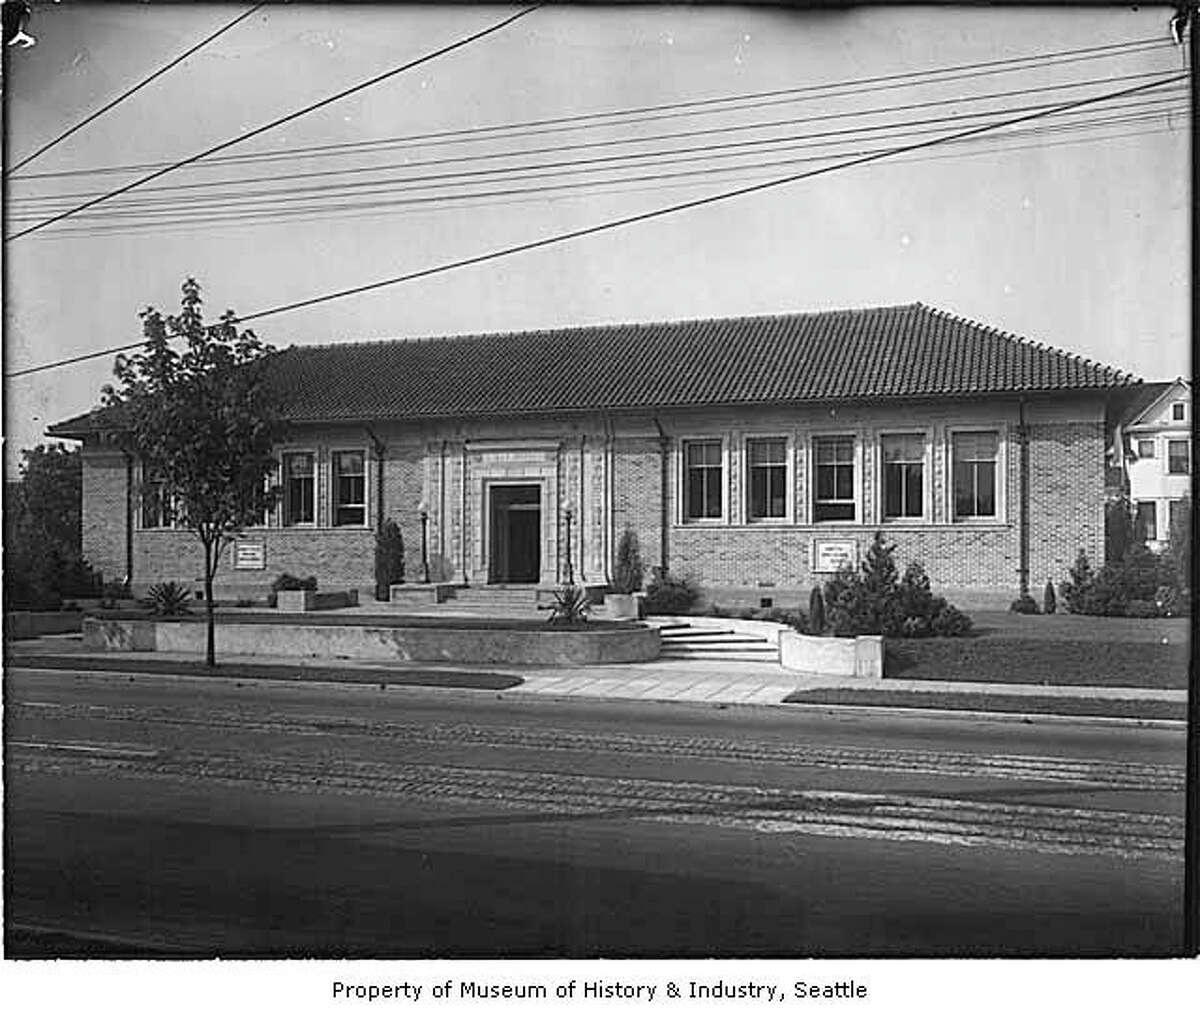 """""""The Yesler Library was built in 1914 and was named after Seattle pioneer Henry Yesler. The name was changed in 1975 at the request of neighborhood community members. Today it is the Douglass-Truth Library, named after Frederick Douglass and Sojourner Truth."""" The branch is shown here in about 1916. -MOHAI. Photo courtesy MOHAI, PEMCO Webster and Stevens Collection, image number 1983.10.10164.1."""